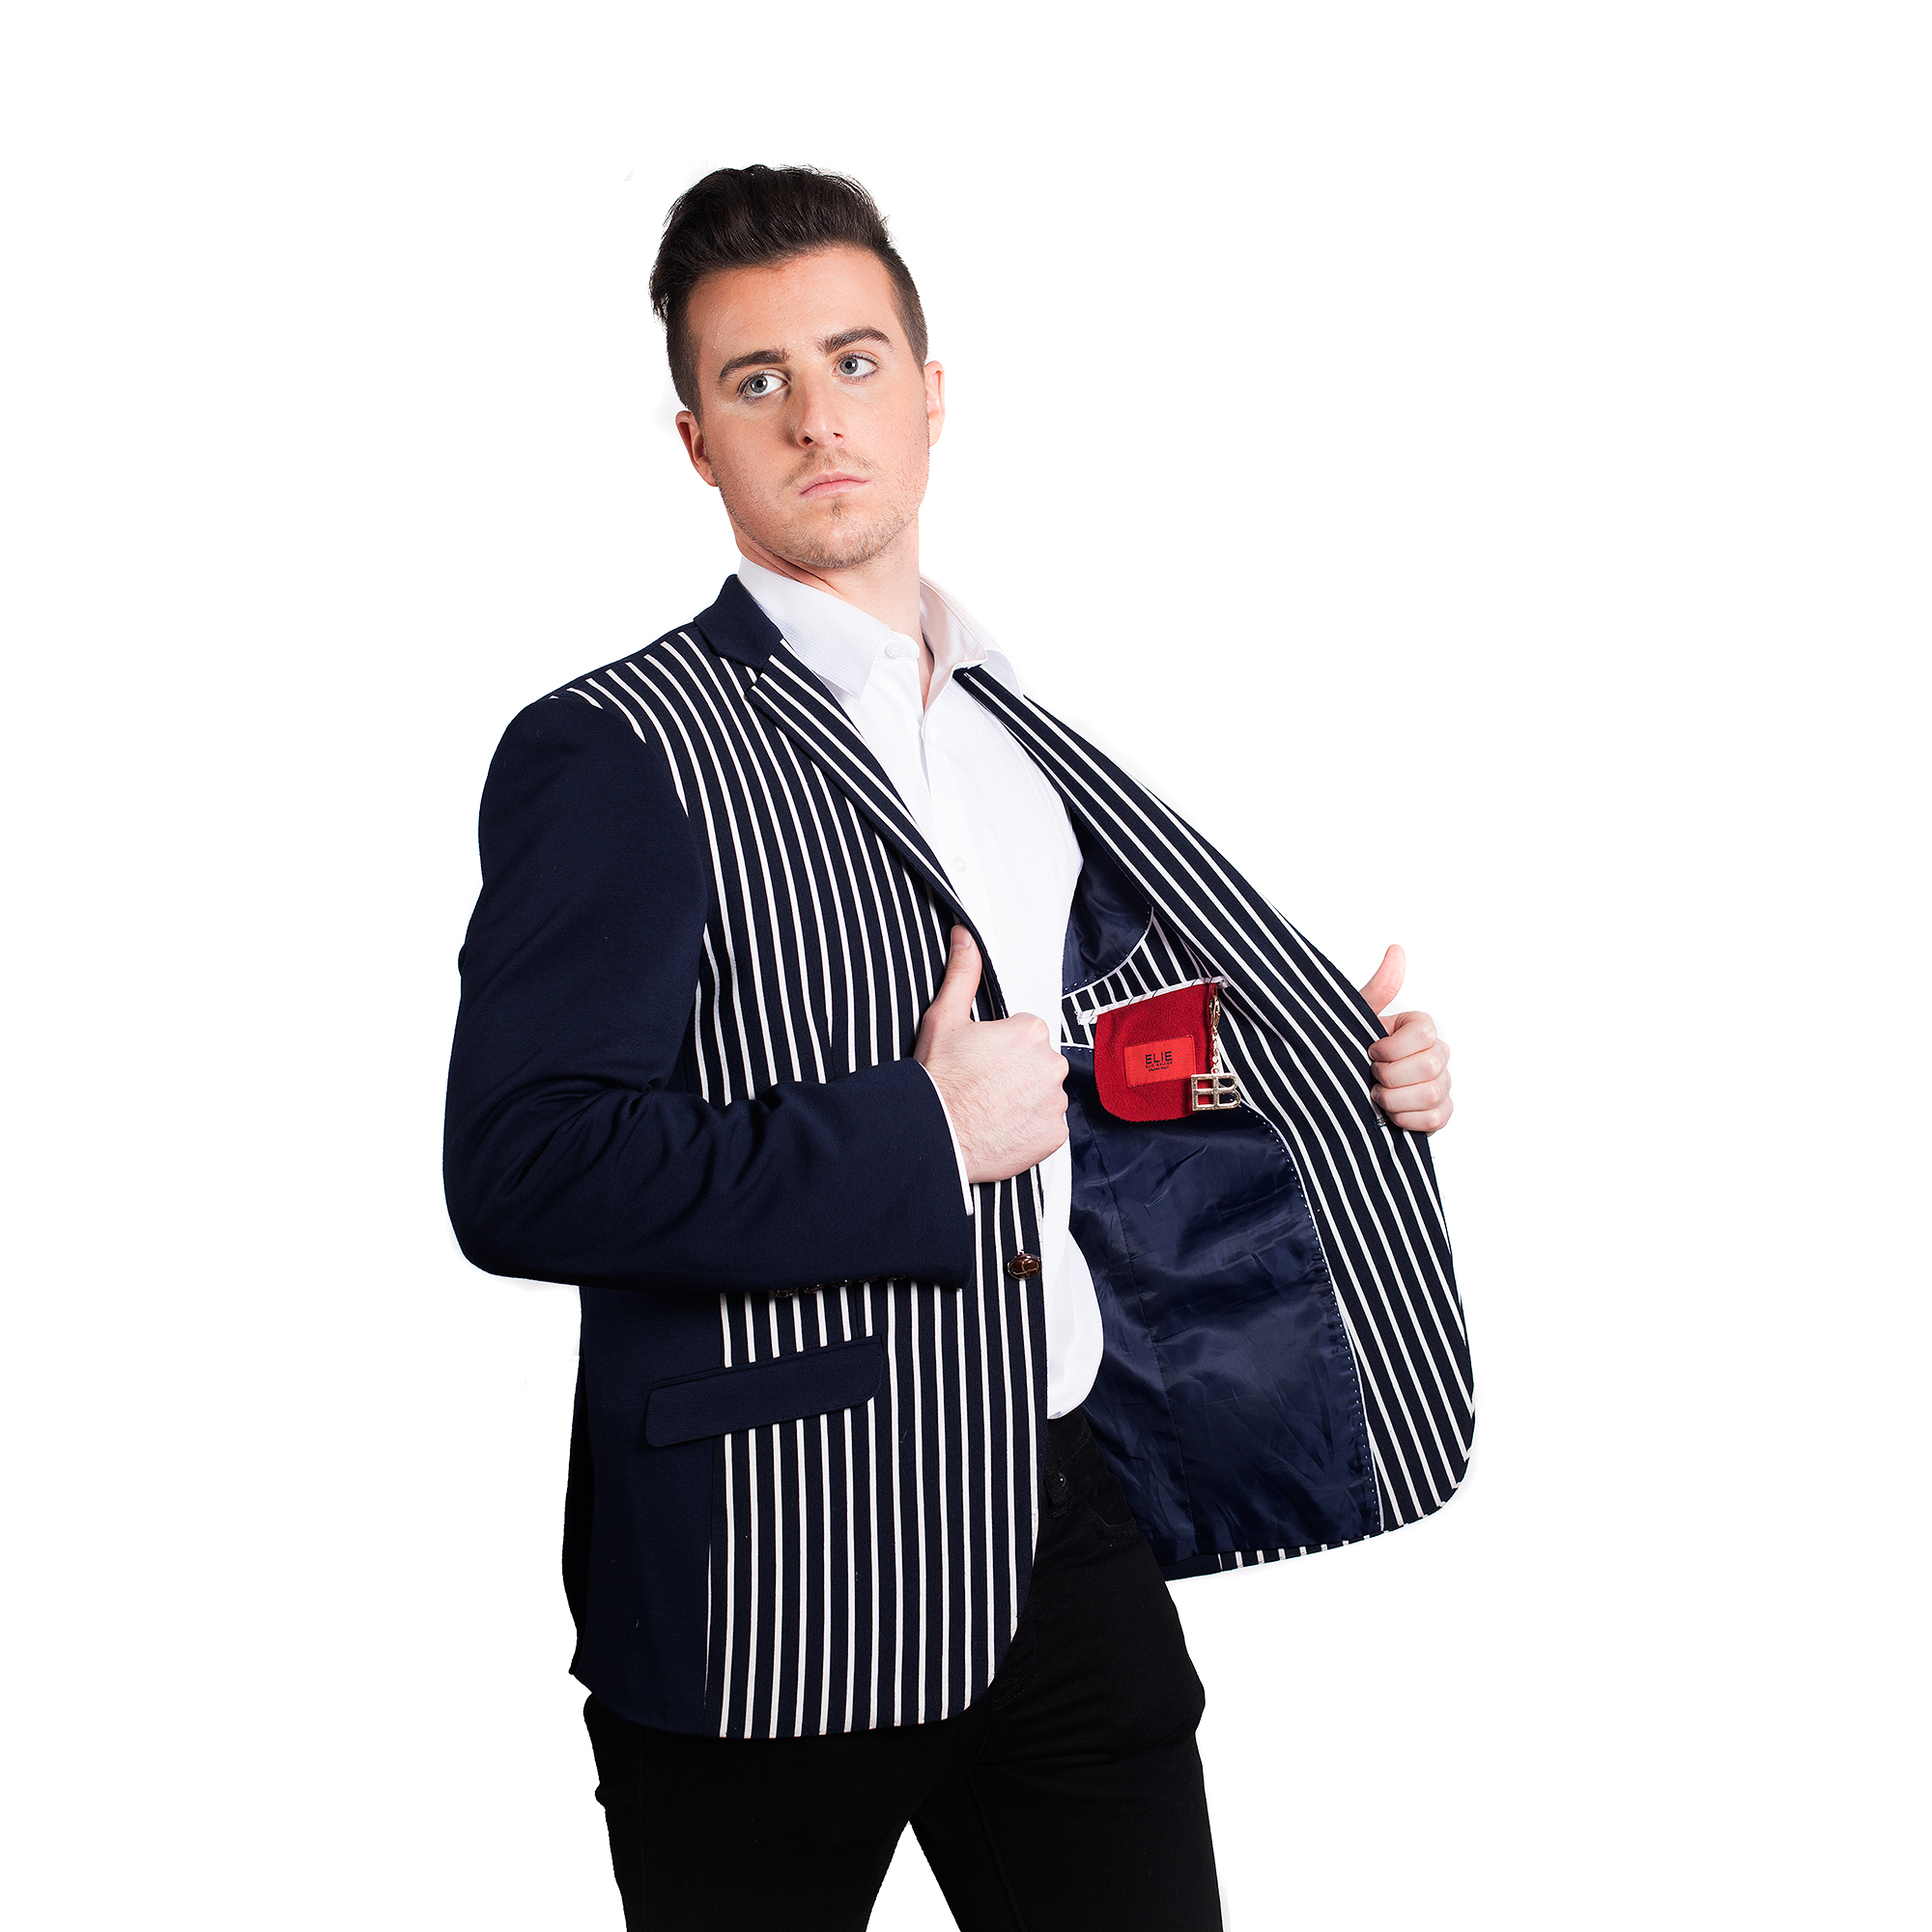 Knit Solid and Strips Men Blazers / Sports Coat Jacket EBBW1551M